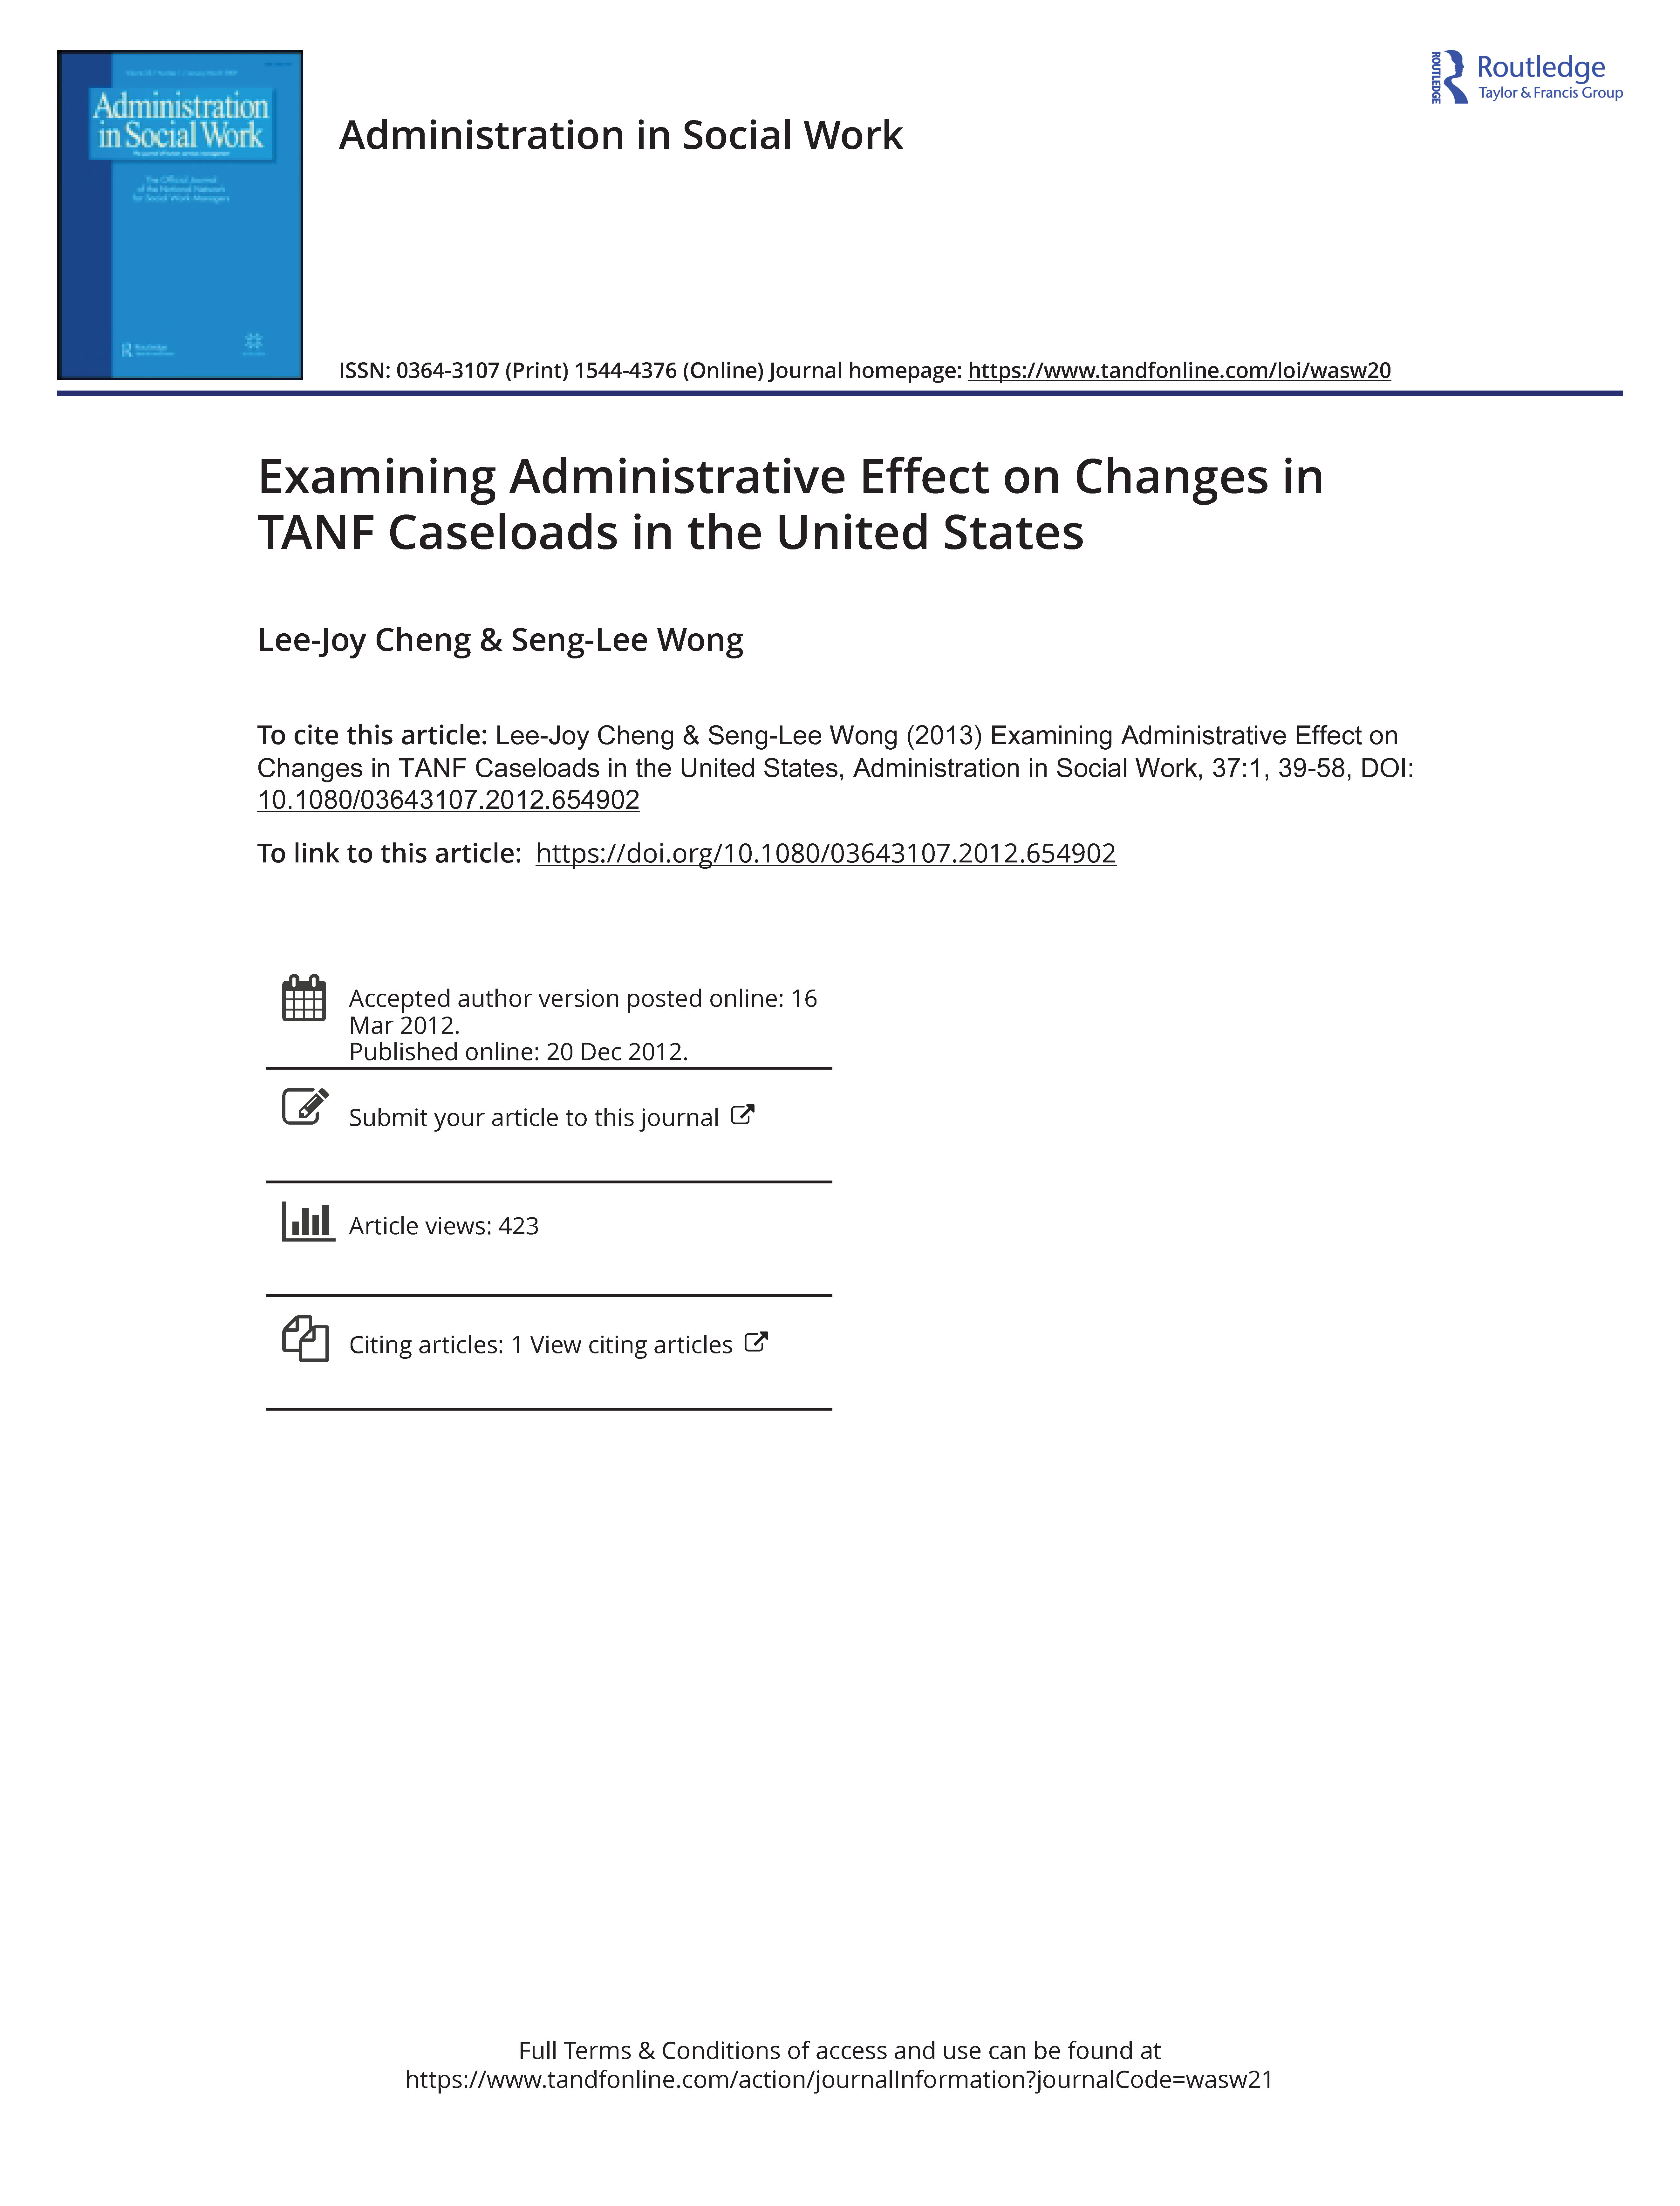 Examining Administrative Effect on Changes in TANF Caseloads in the United States